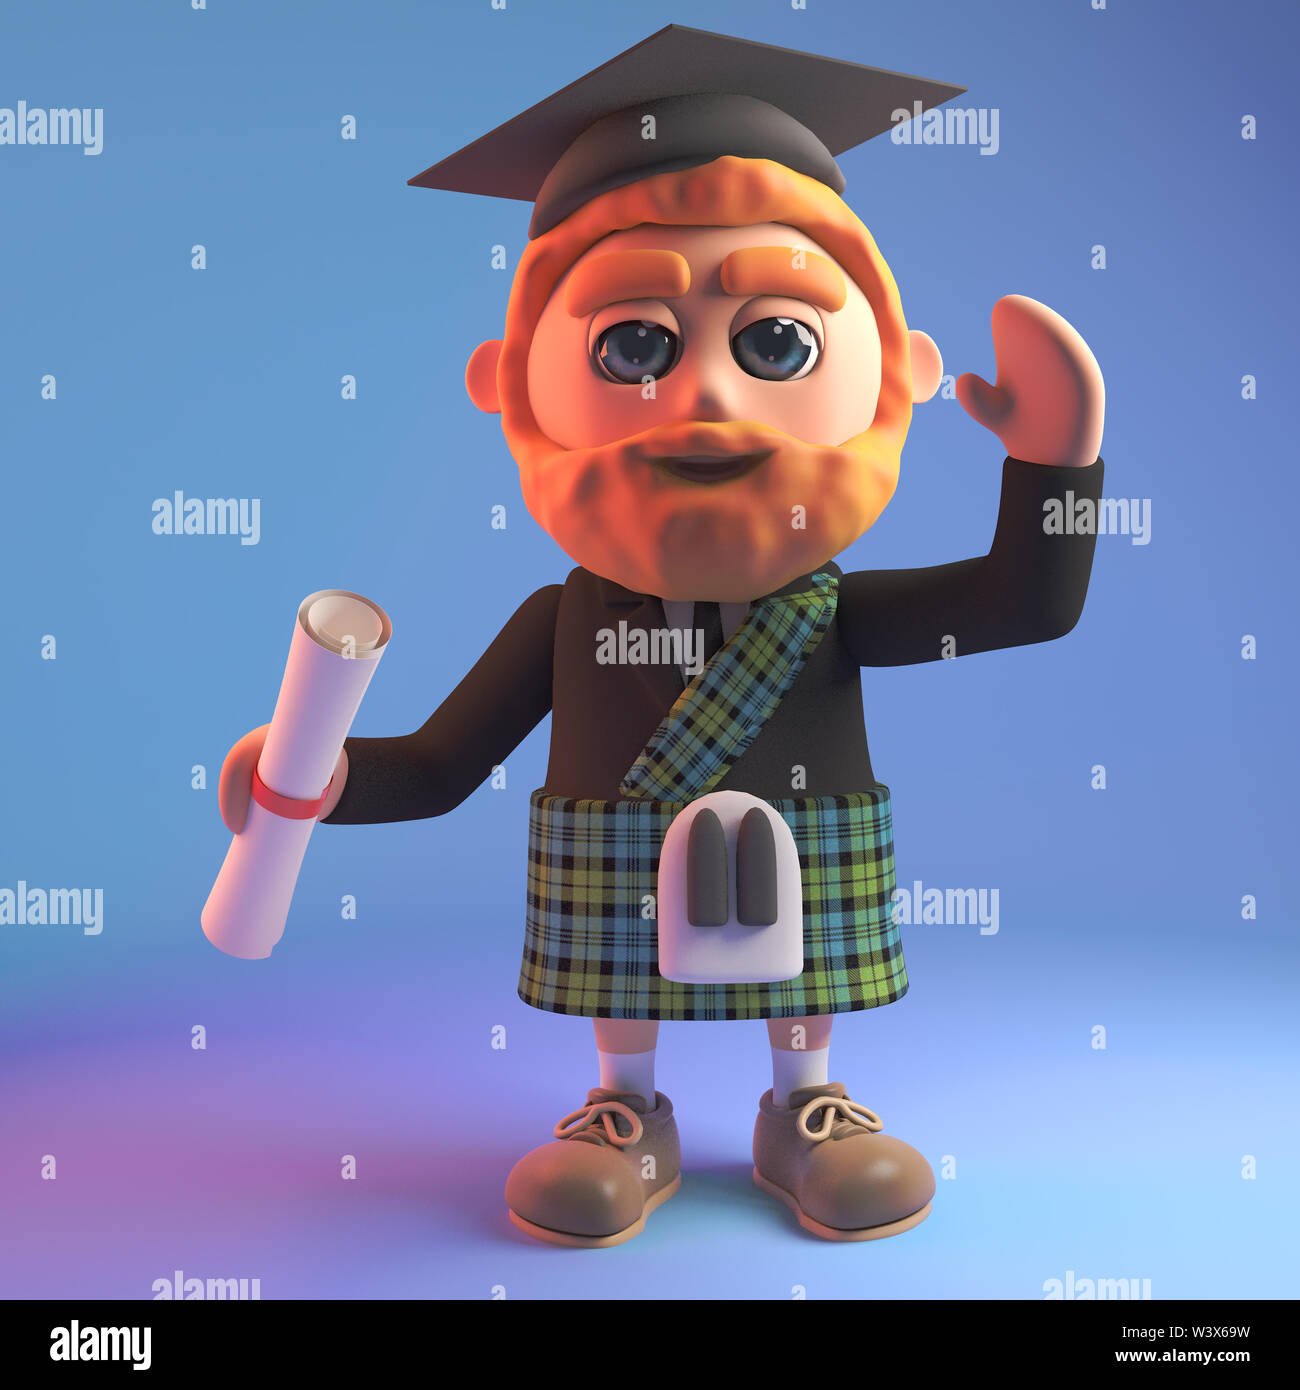 Educated Scottish man in 3d wearing a tartan kilt and mortar board holding a diploma, 3d illustration render - Stock Image